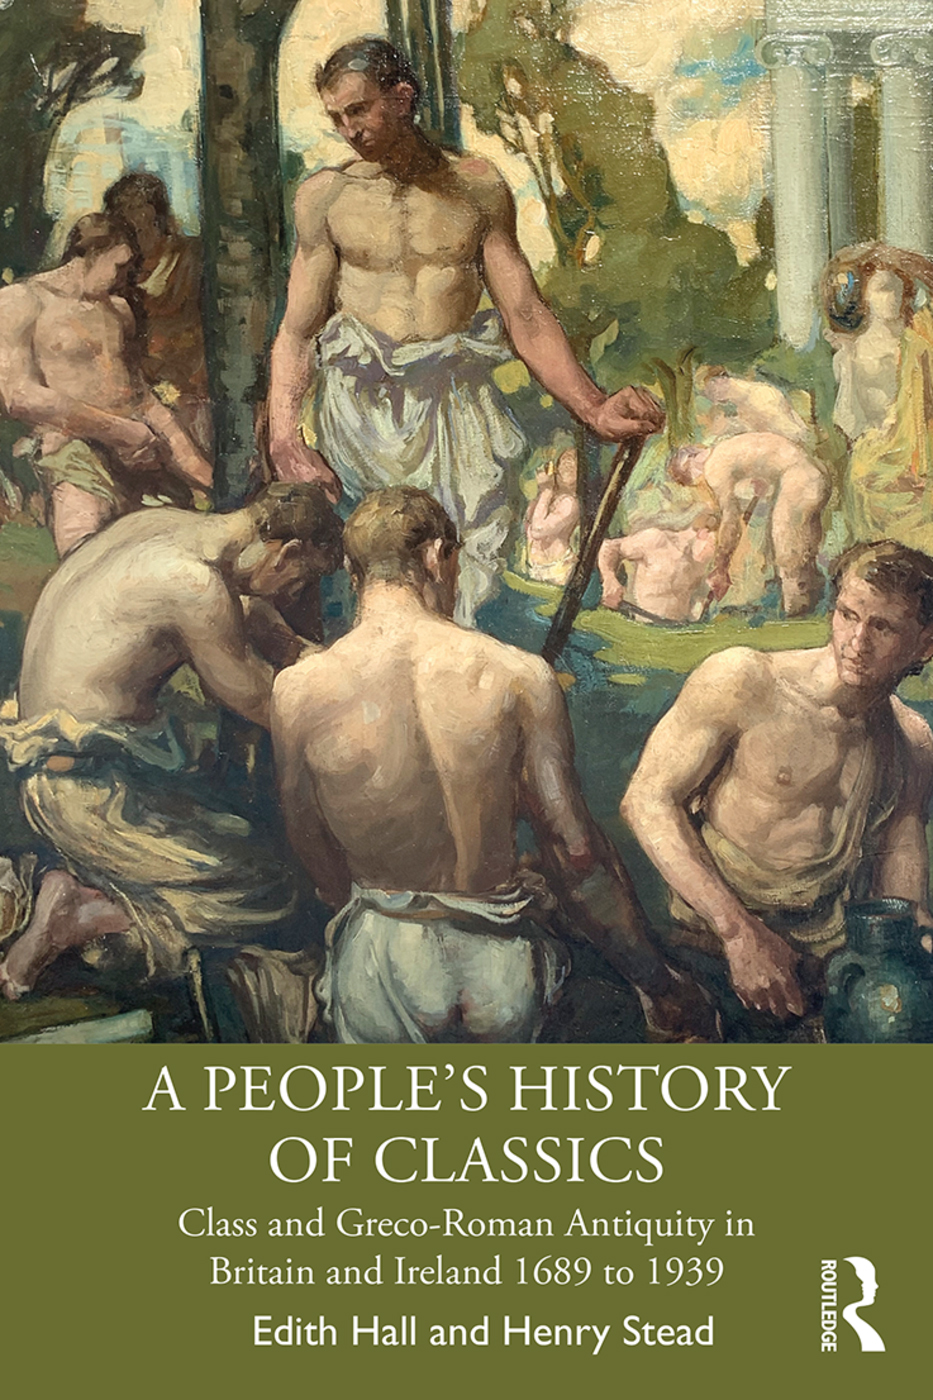 A People's History of Classics: Class and Greco-Roman Antiquity in Britain and Ireland 1689 to 1939 book cover